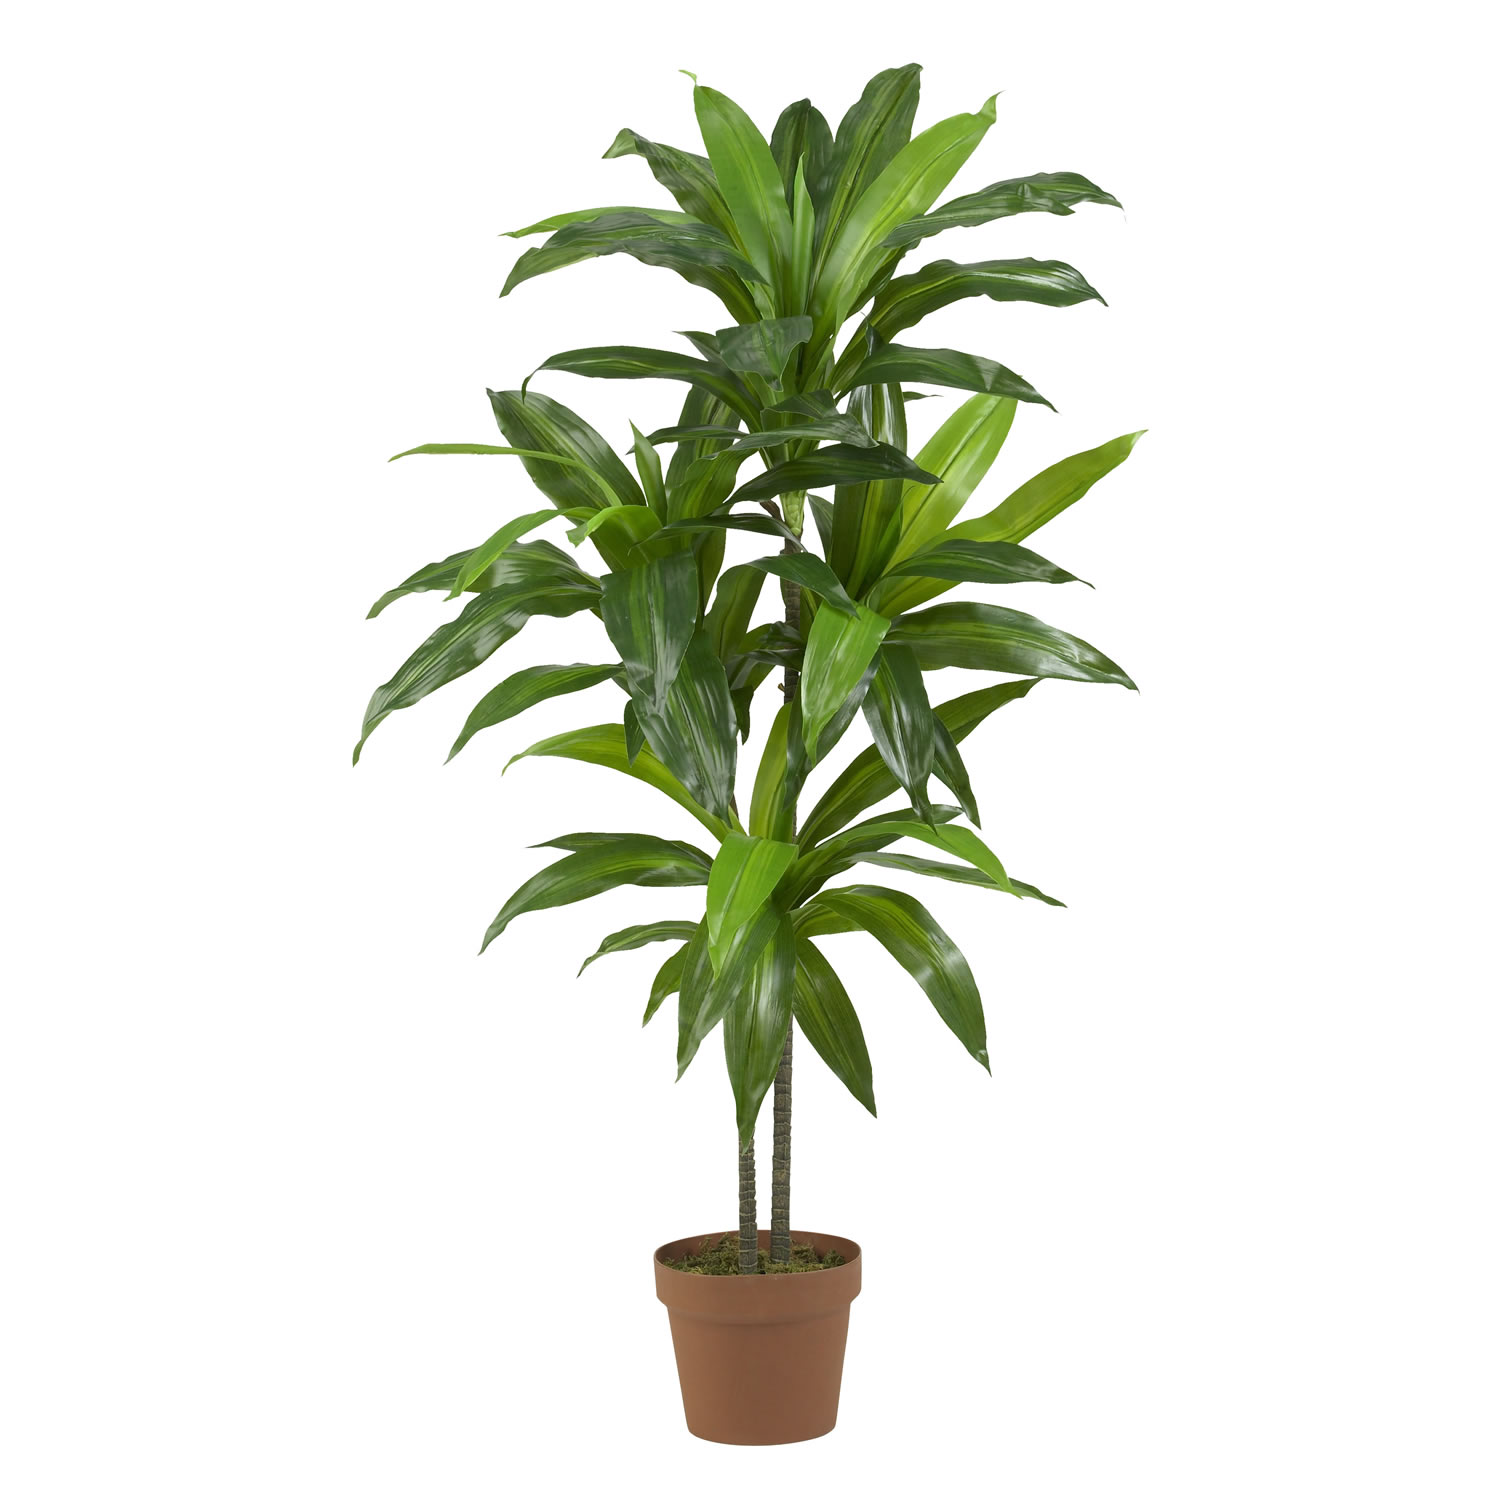 48 inch dracaena tree potted 6585 for Plante dracaena